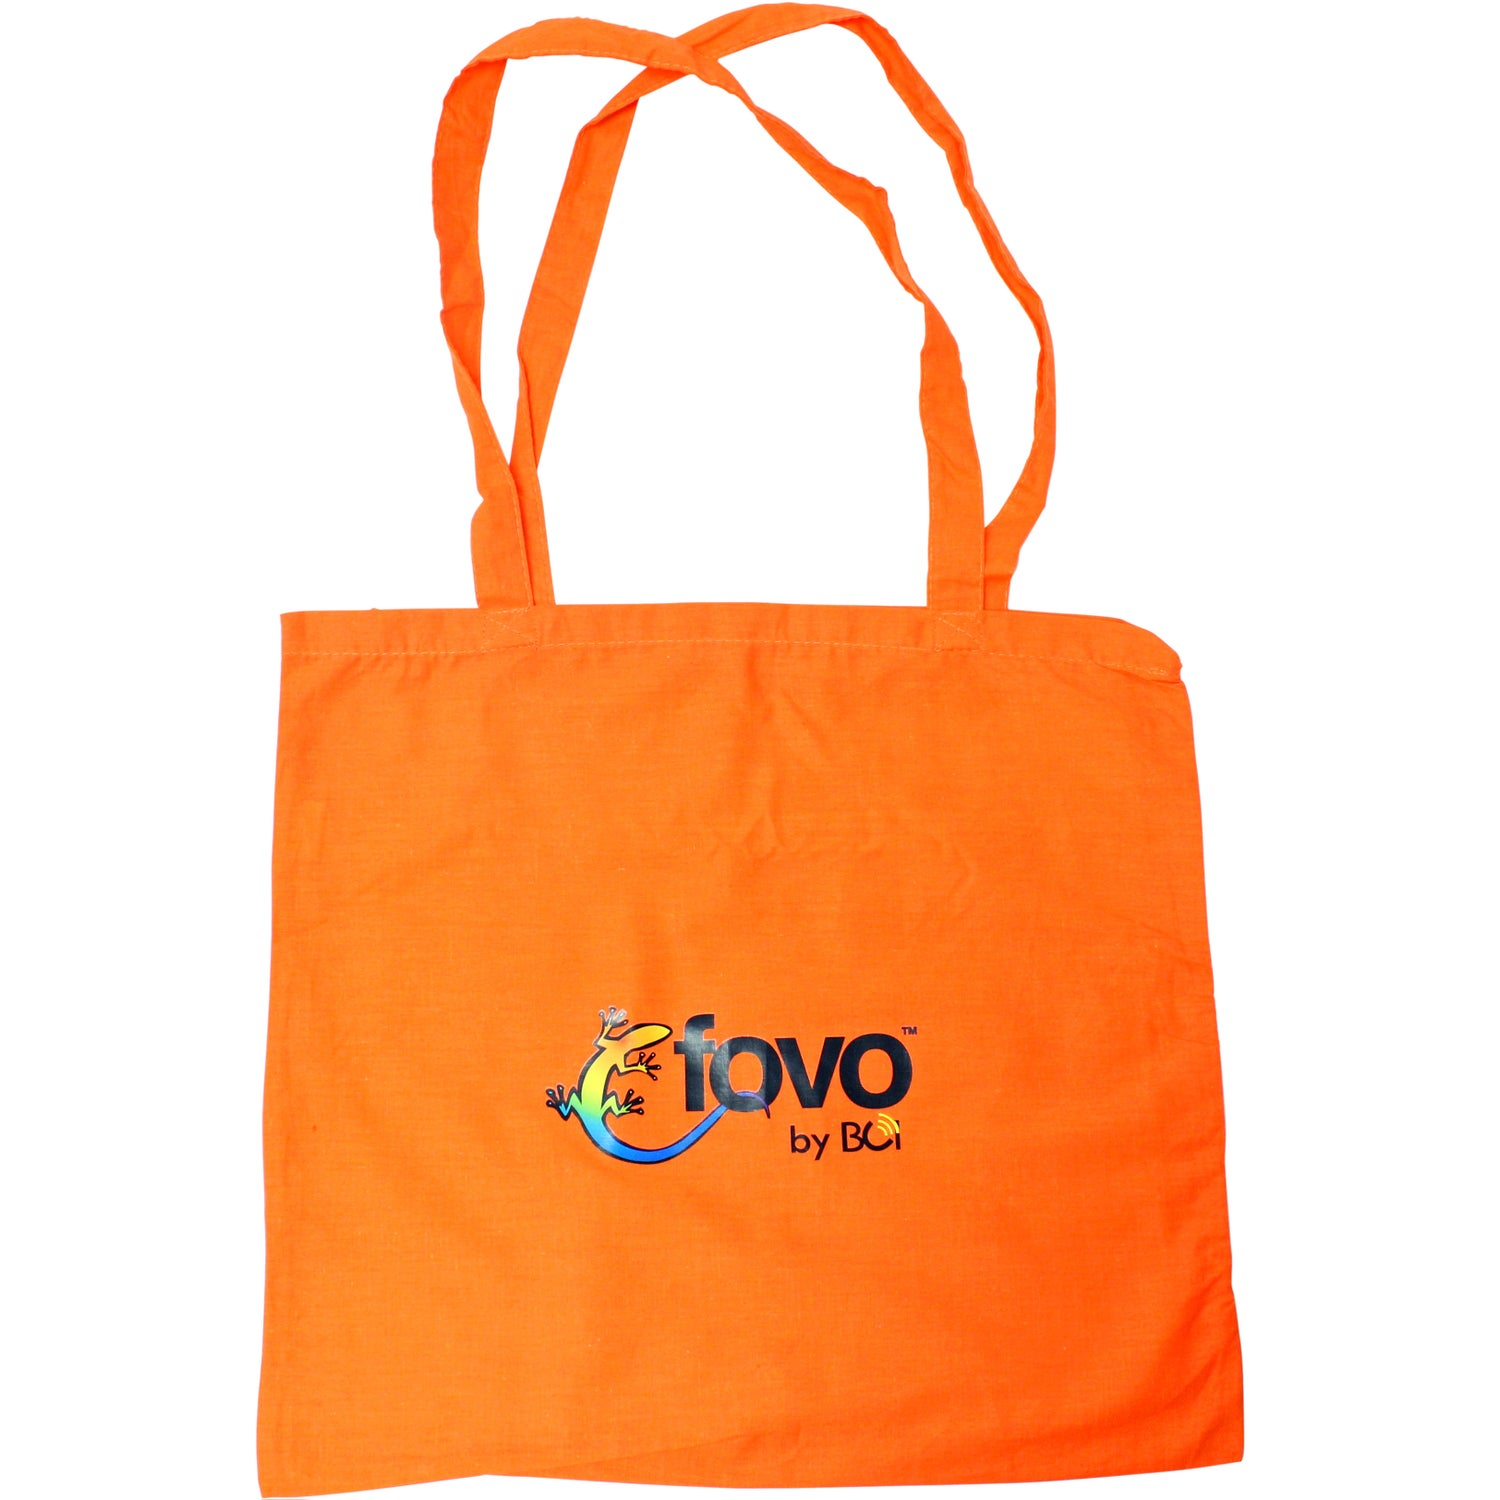 Promotional 100% Cotton Tote Bag with Custom Logo for $1.39 Ea.